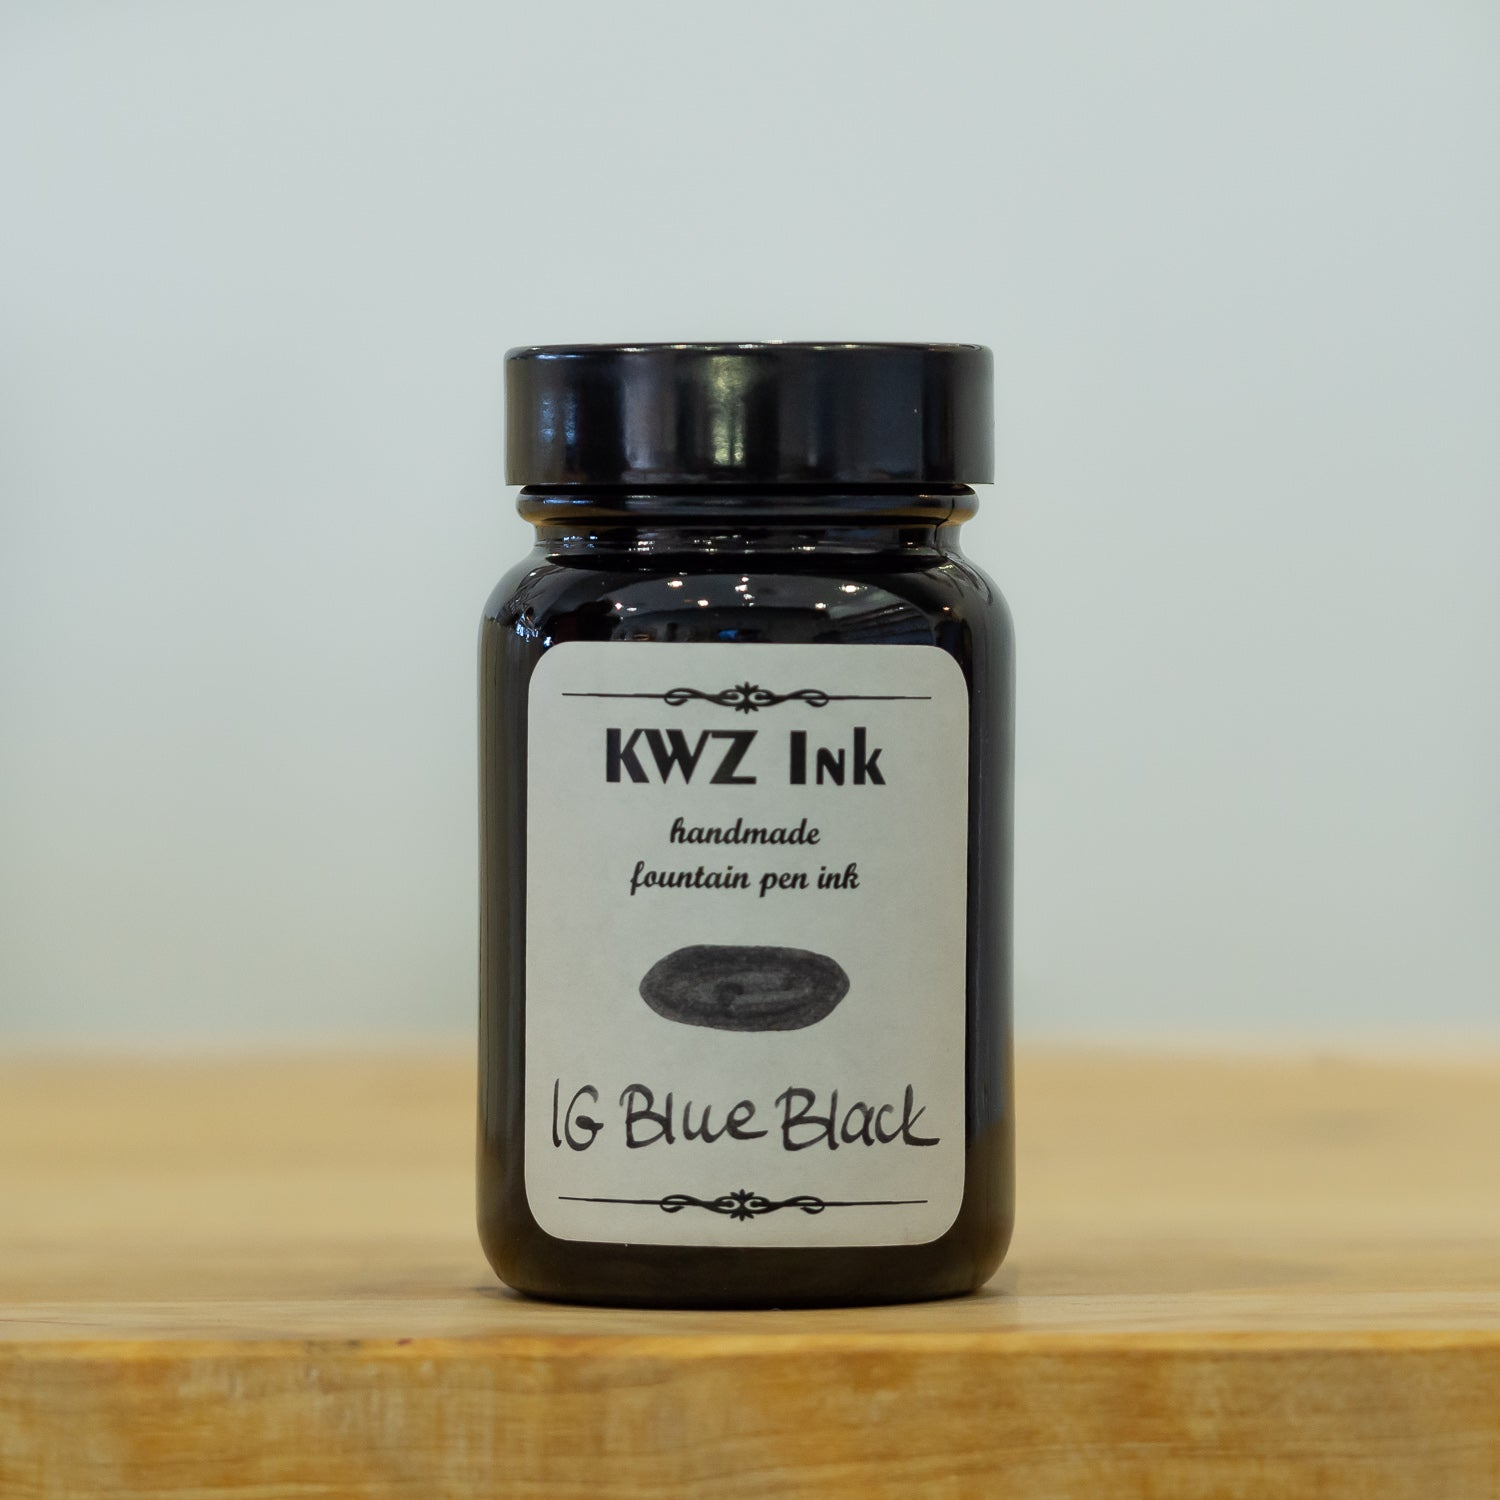 KWZ Iron Gall Blue Black fountain pen ink